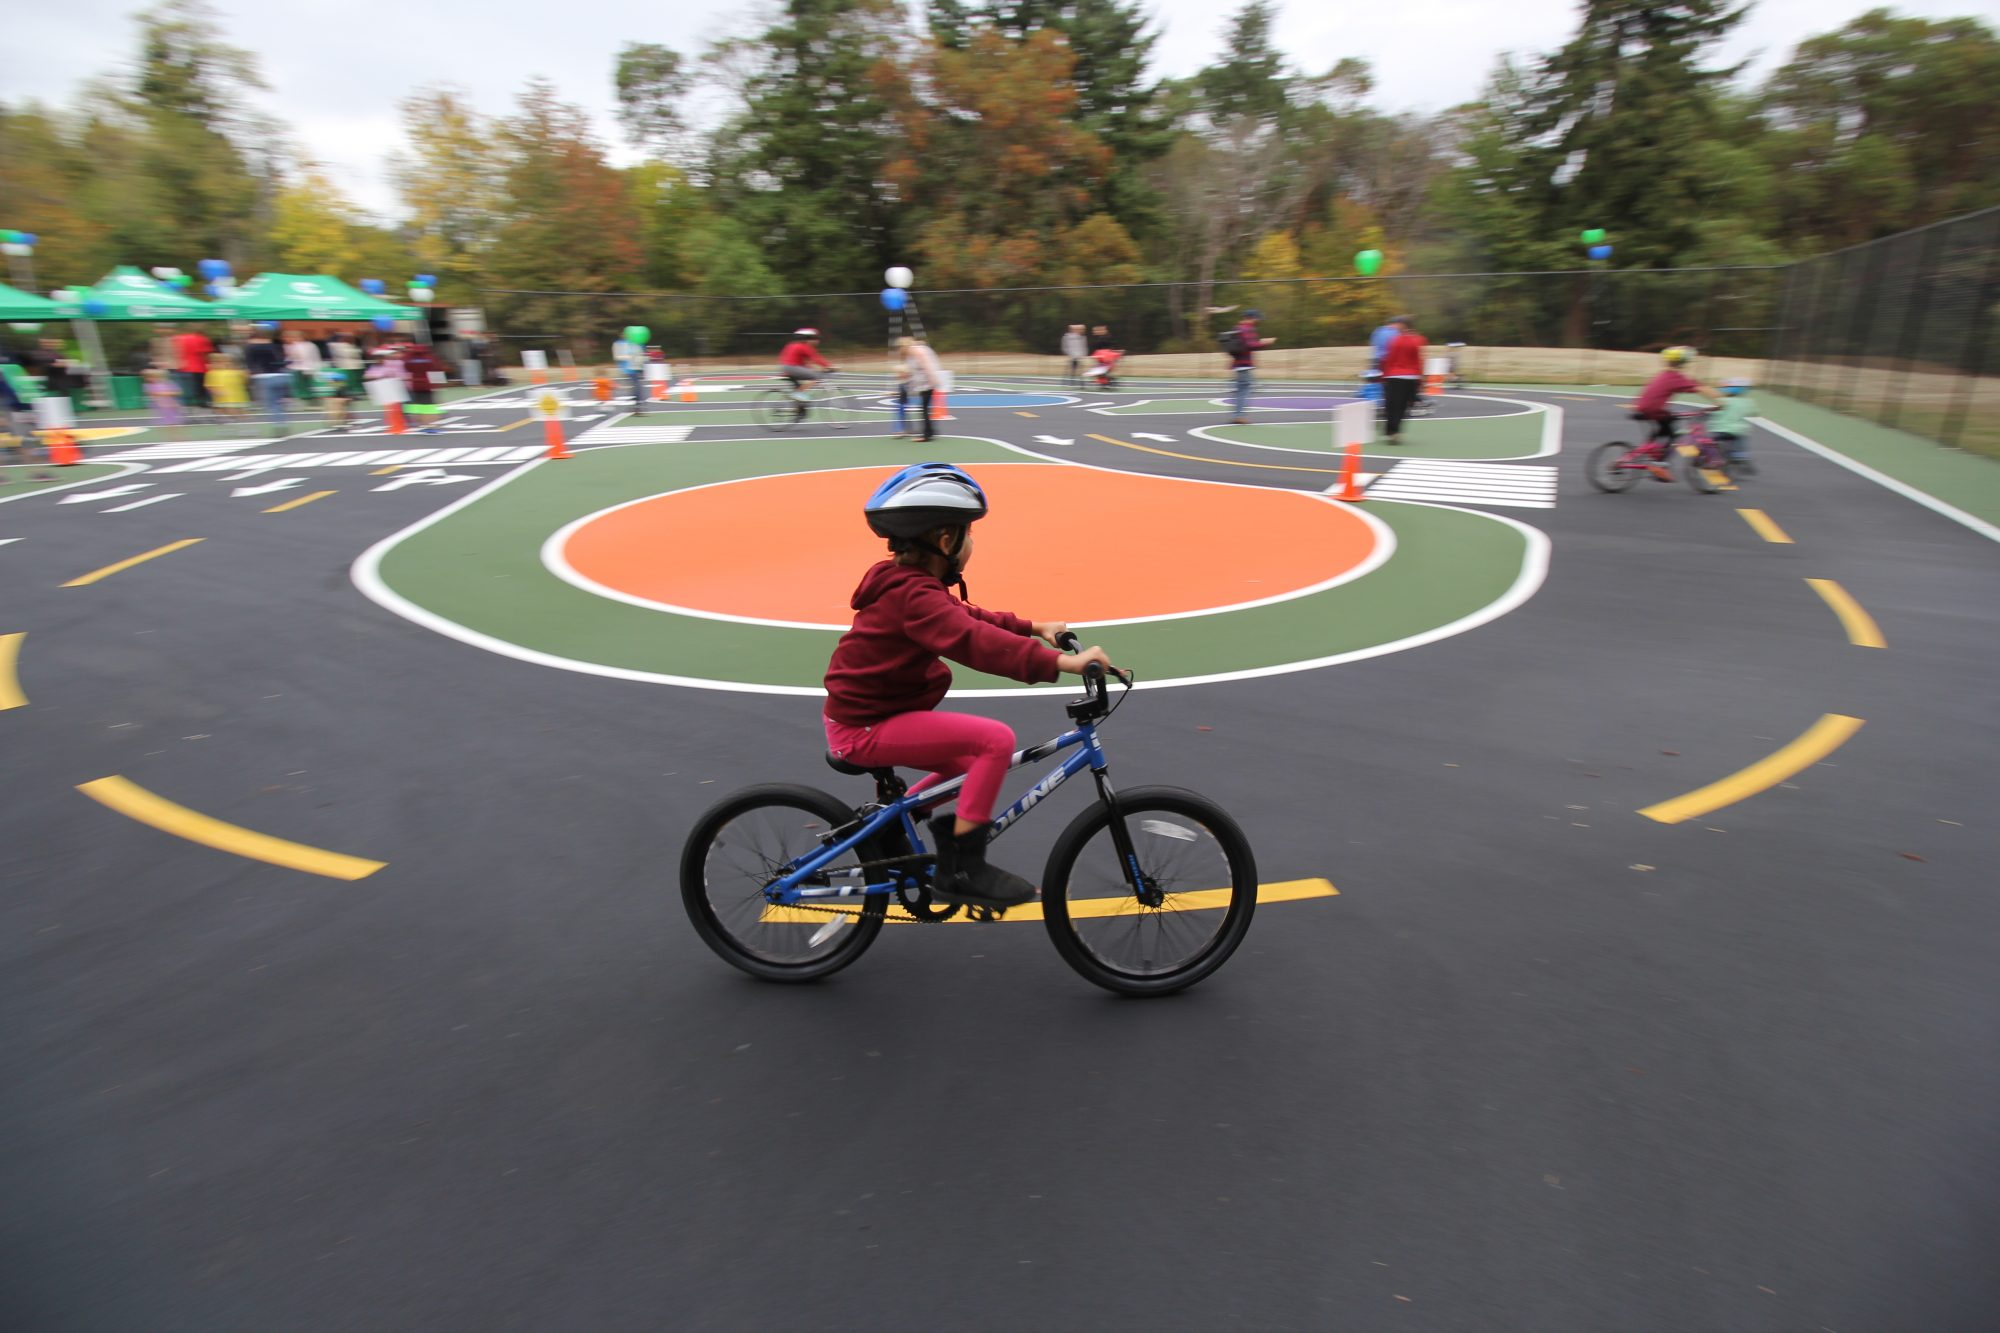 Seattleu0027s New Traffic Garden Is The Perfect Place To Learn The Rules Of The  Road